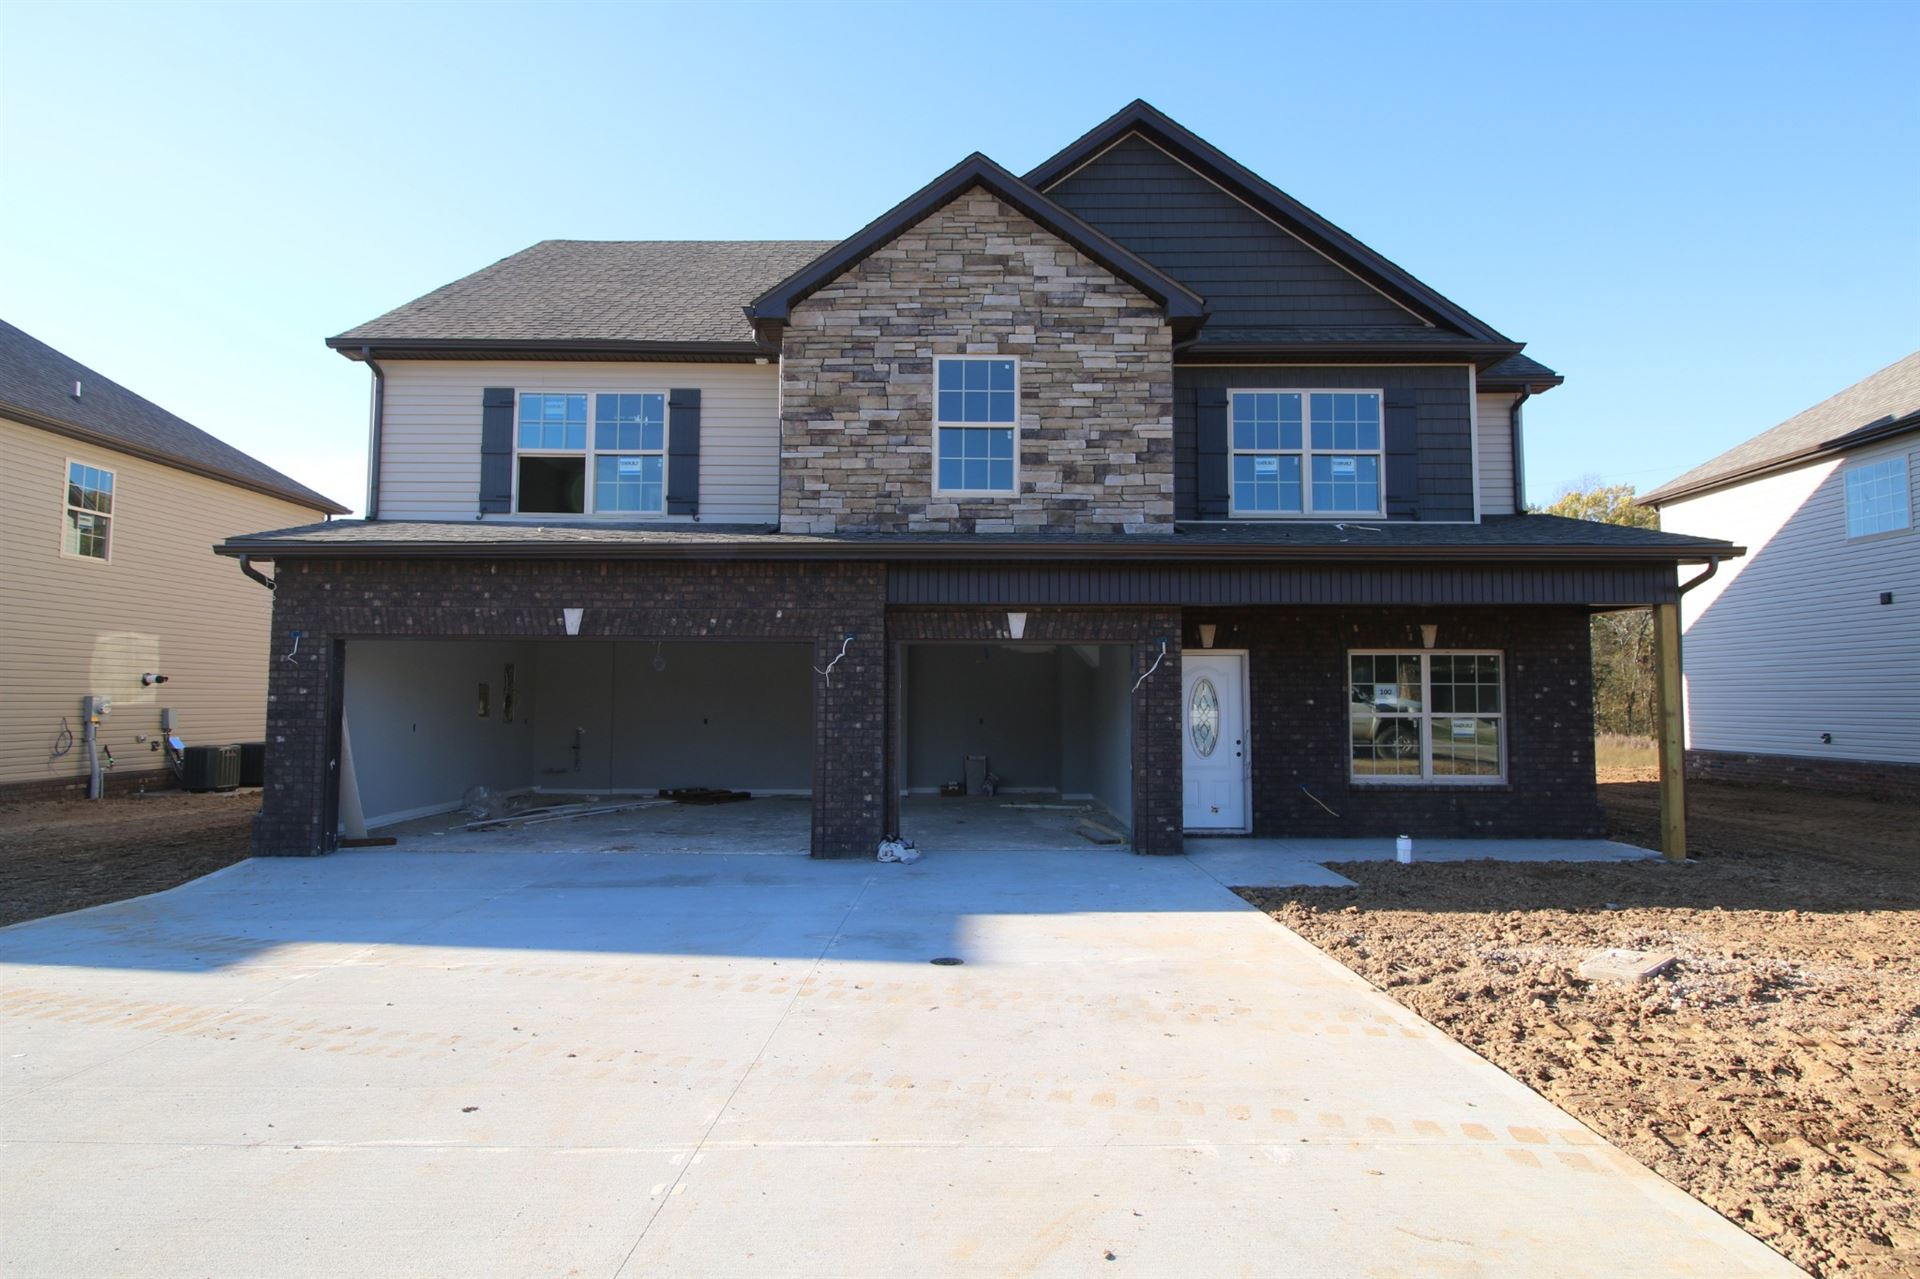 100 The Groves at Hearthstone, Clarksville, TN 37040 - MLS#: 2184101